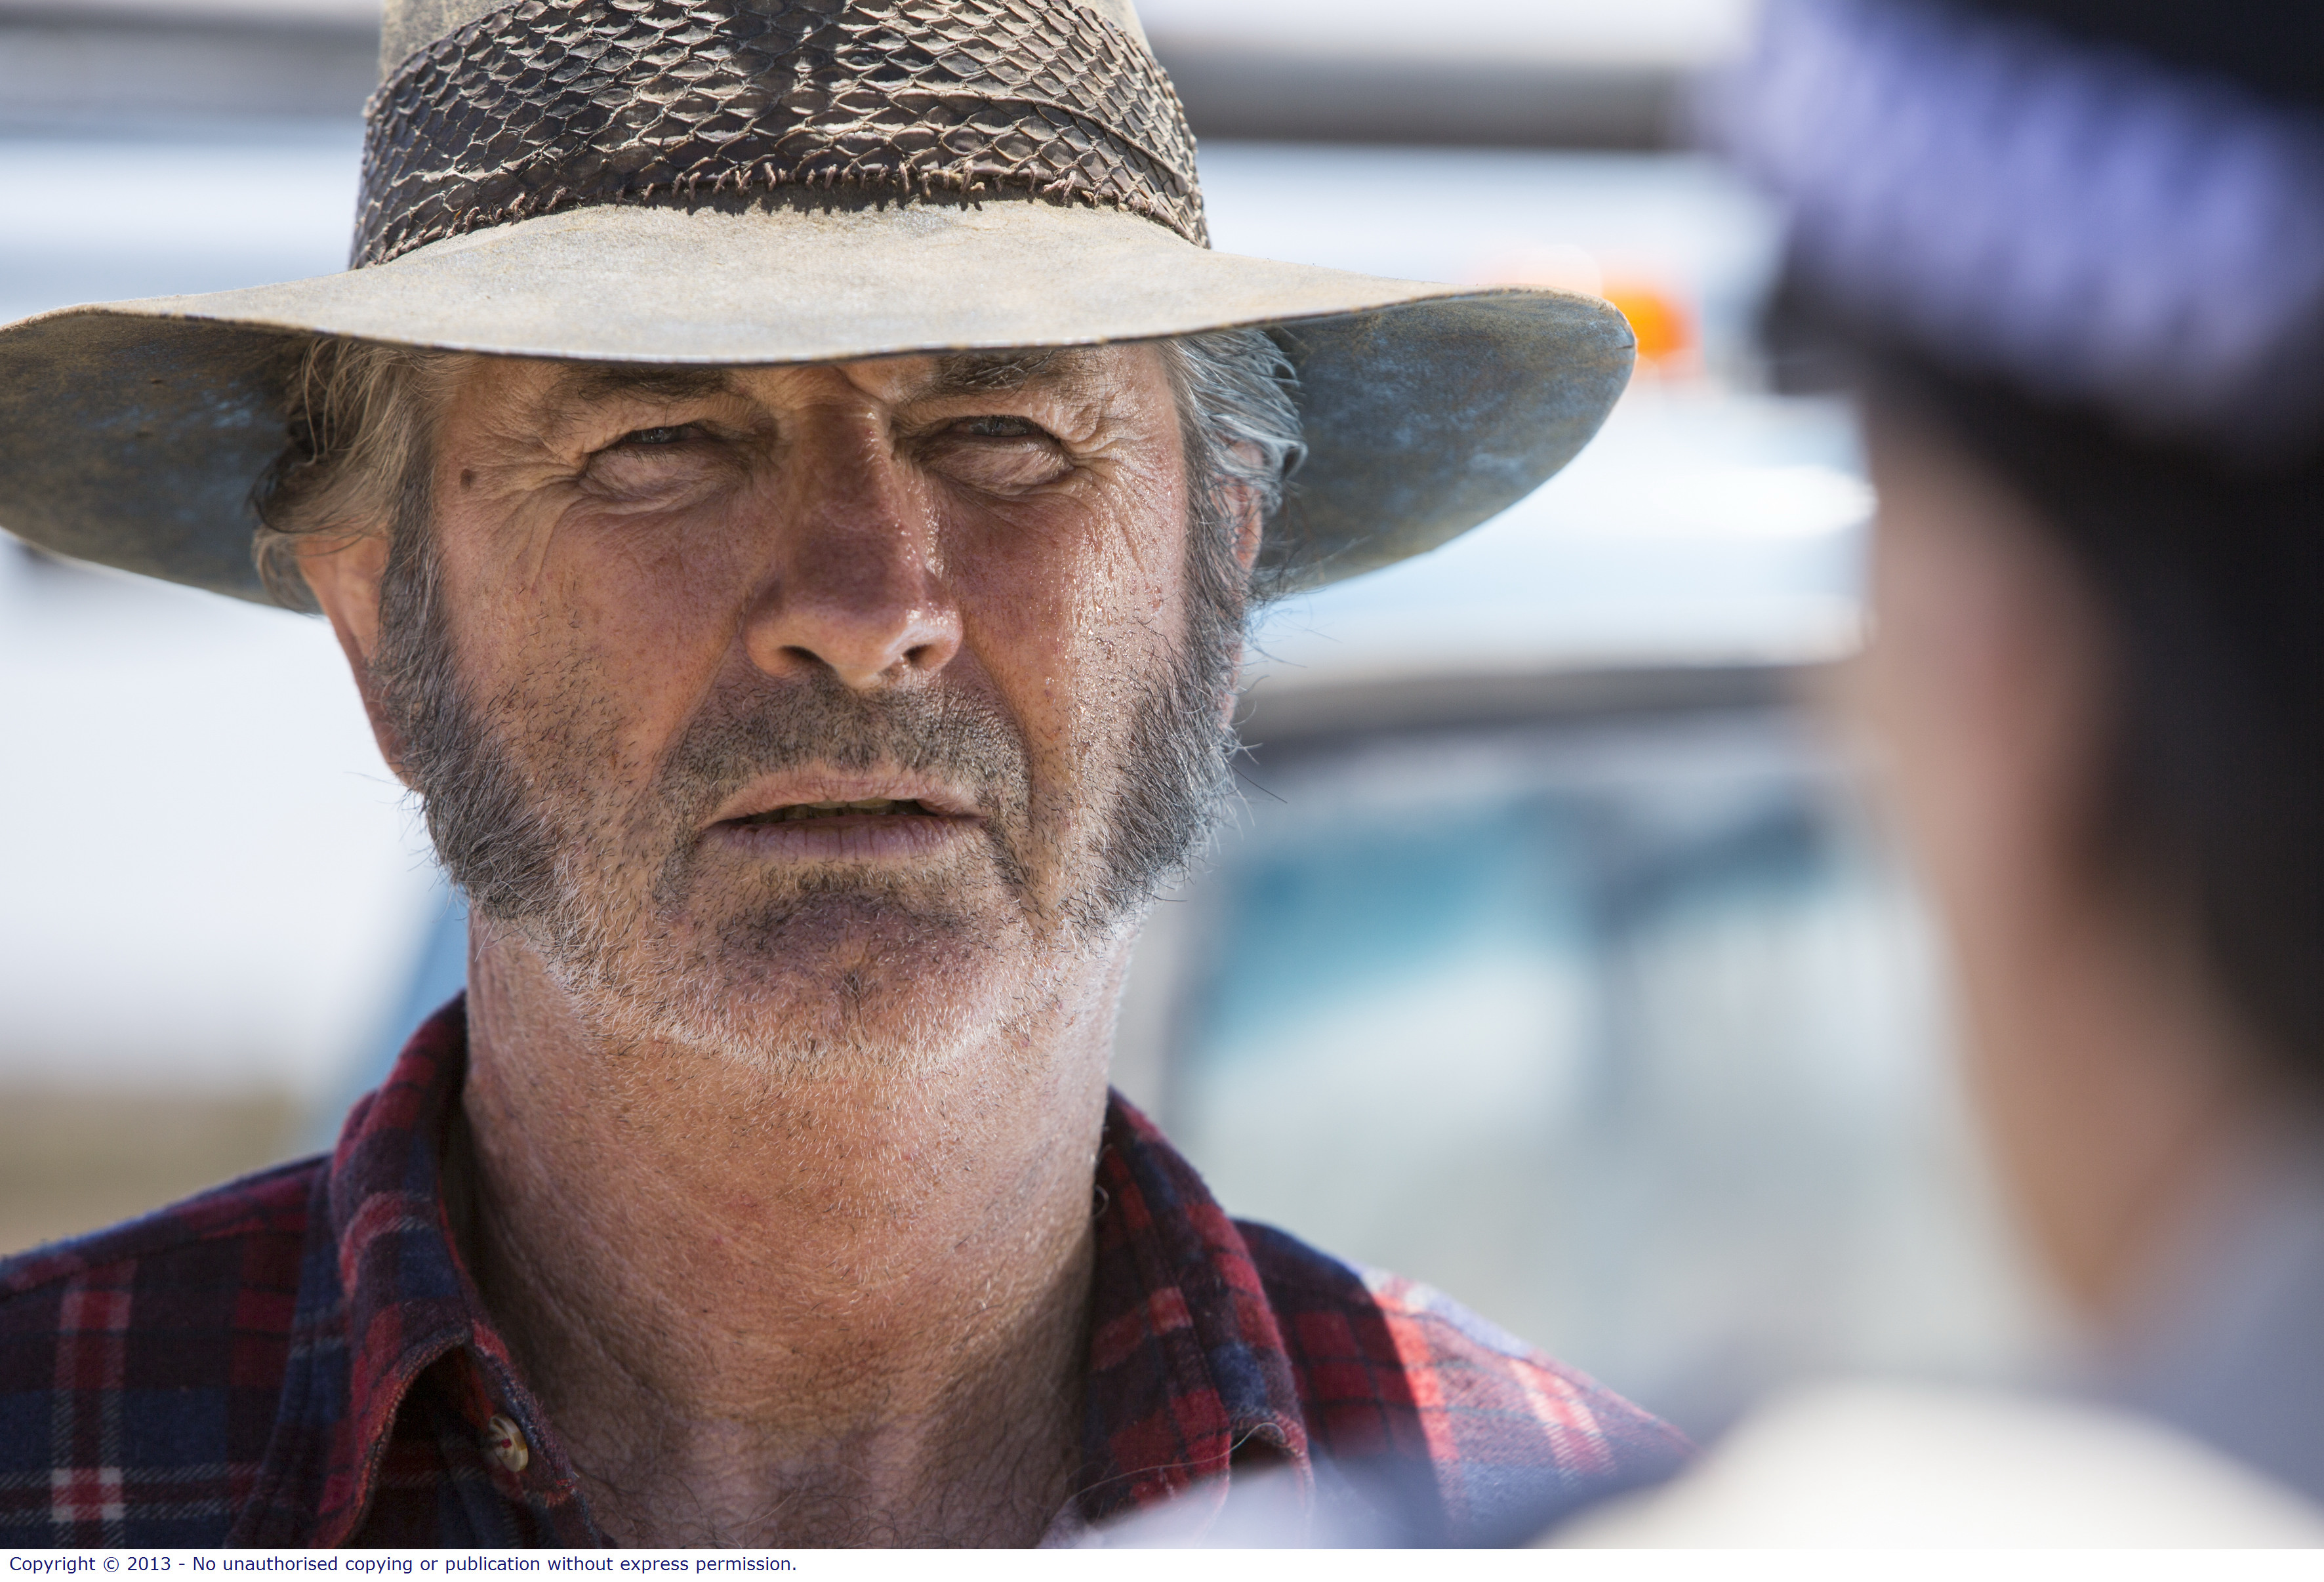 hires image gallery for wolf creek 2 bloody disgusting